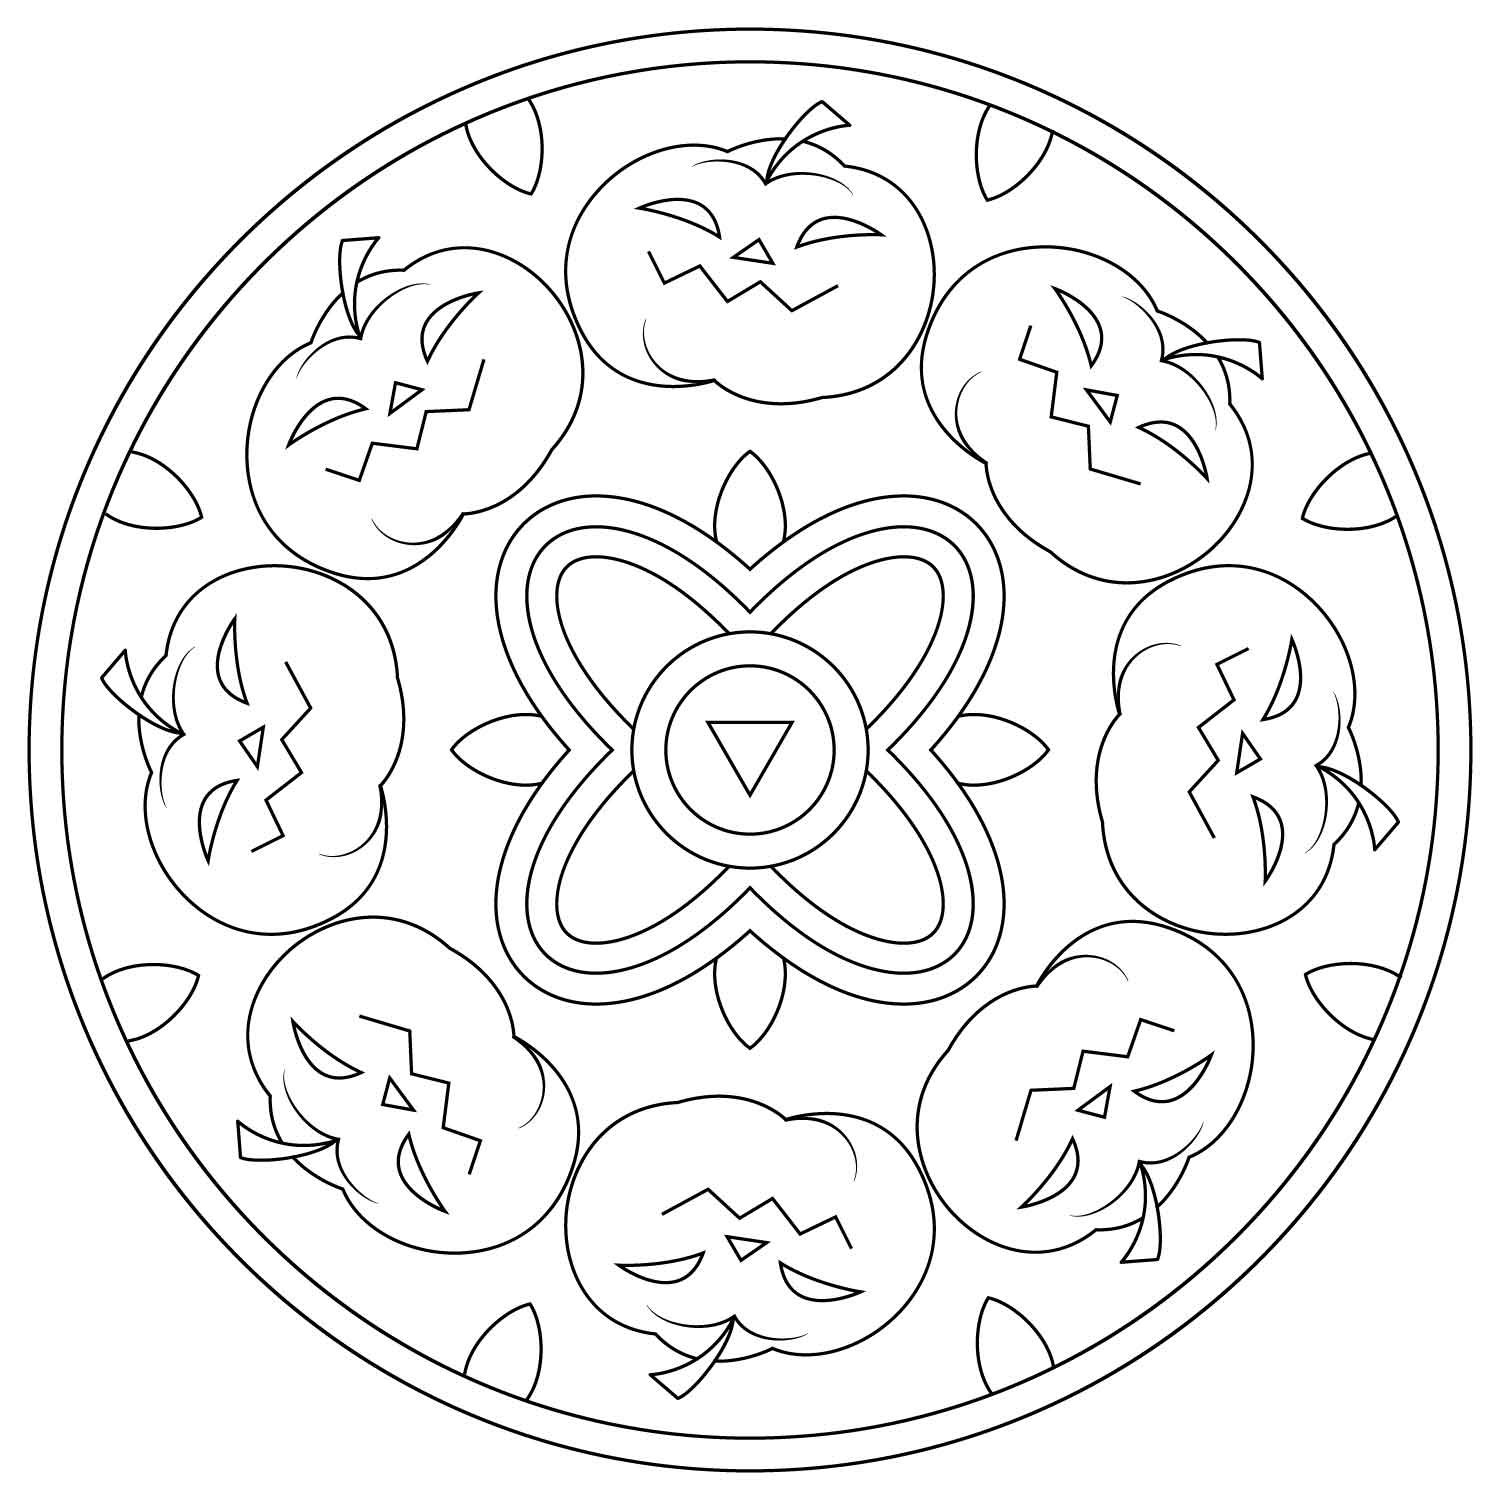 halloween mandala coloring pages halloween mandala with pumpkins coloring page free coloring mandala halloween pages